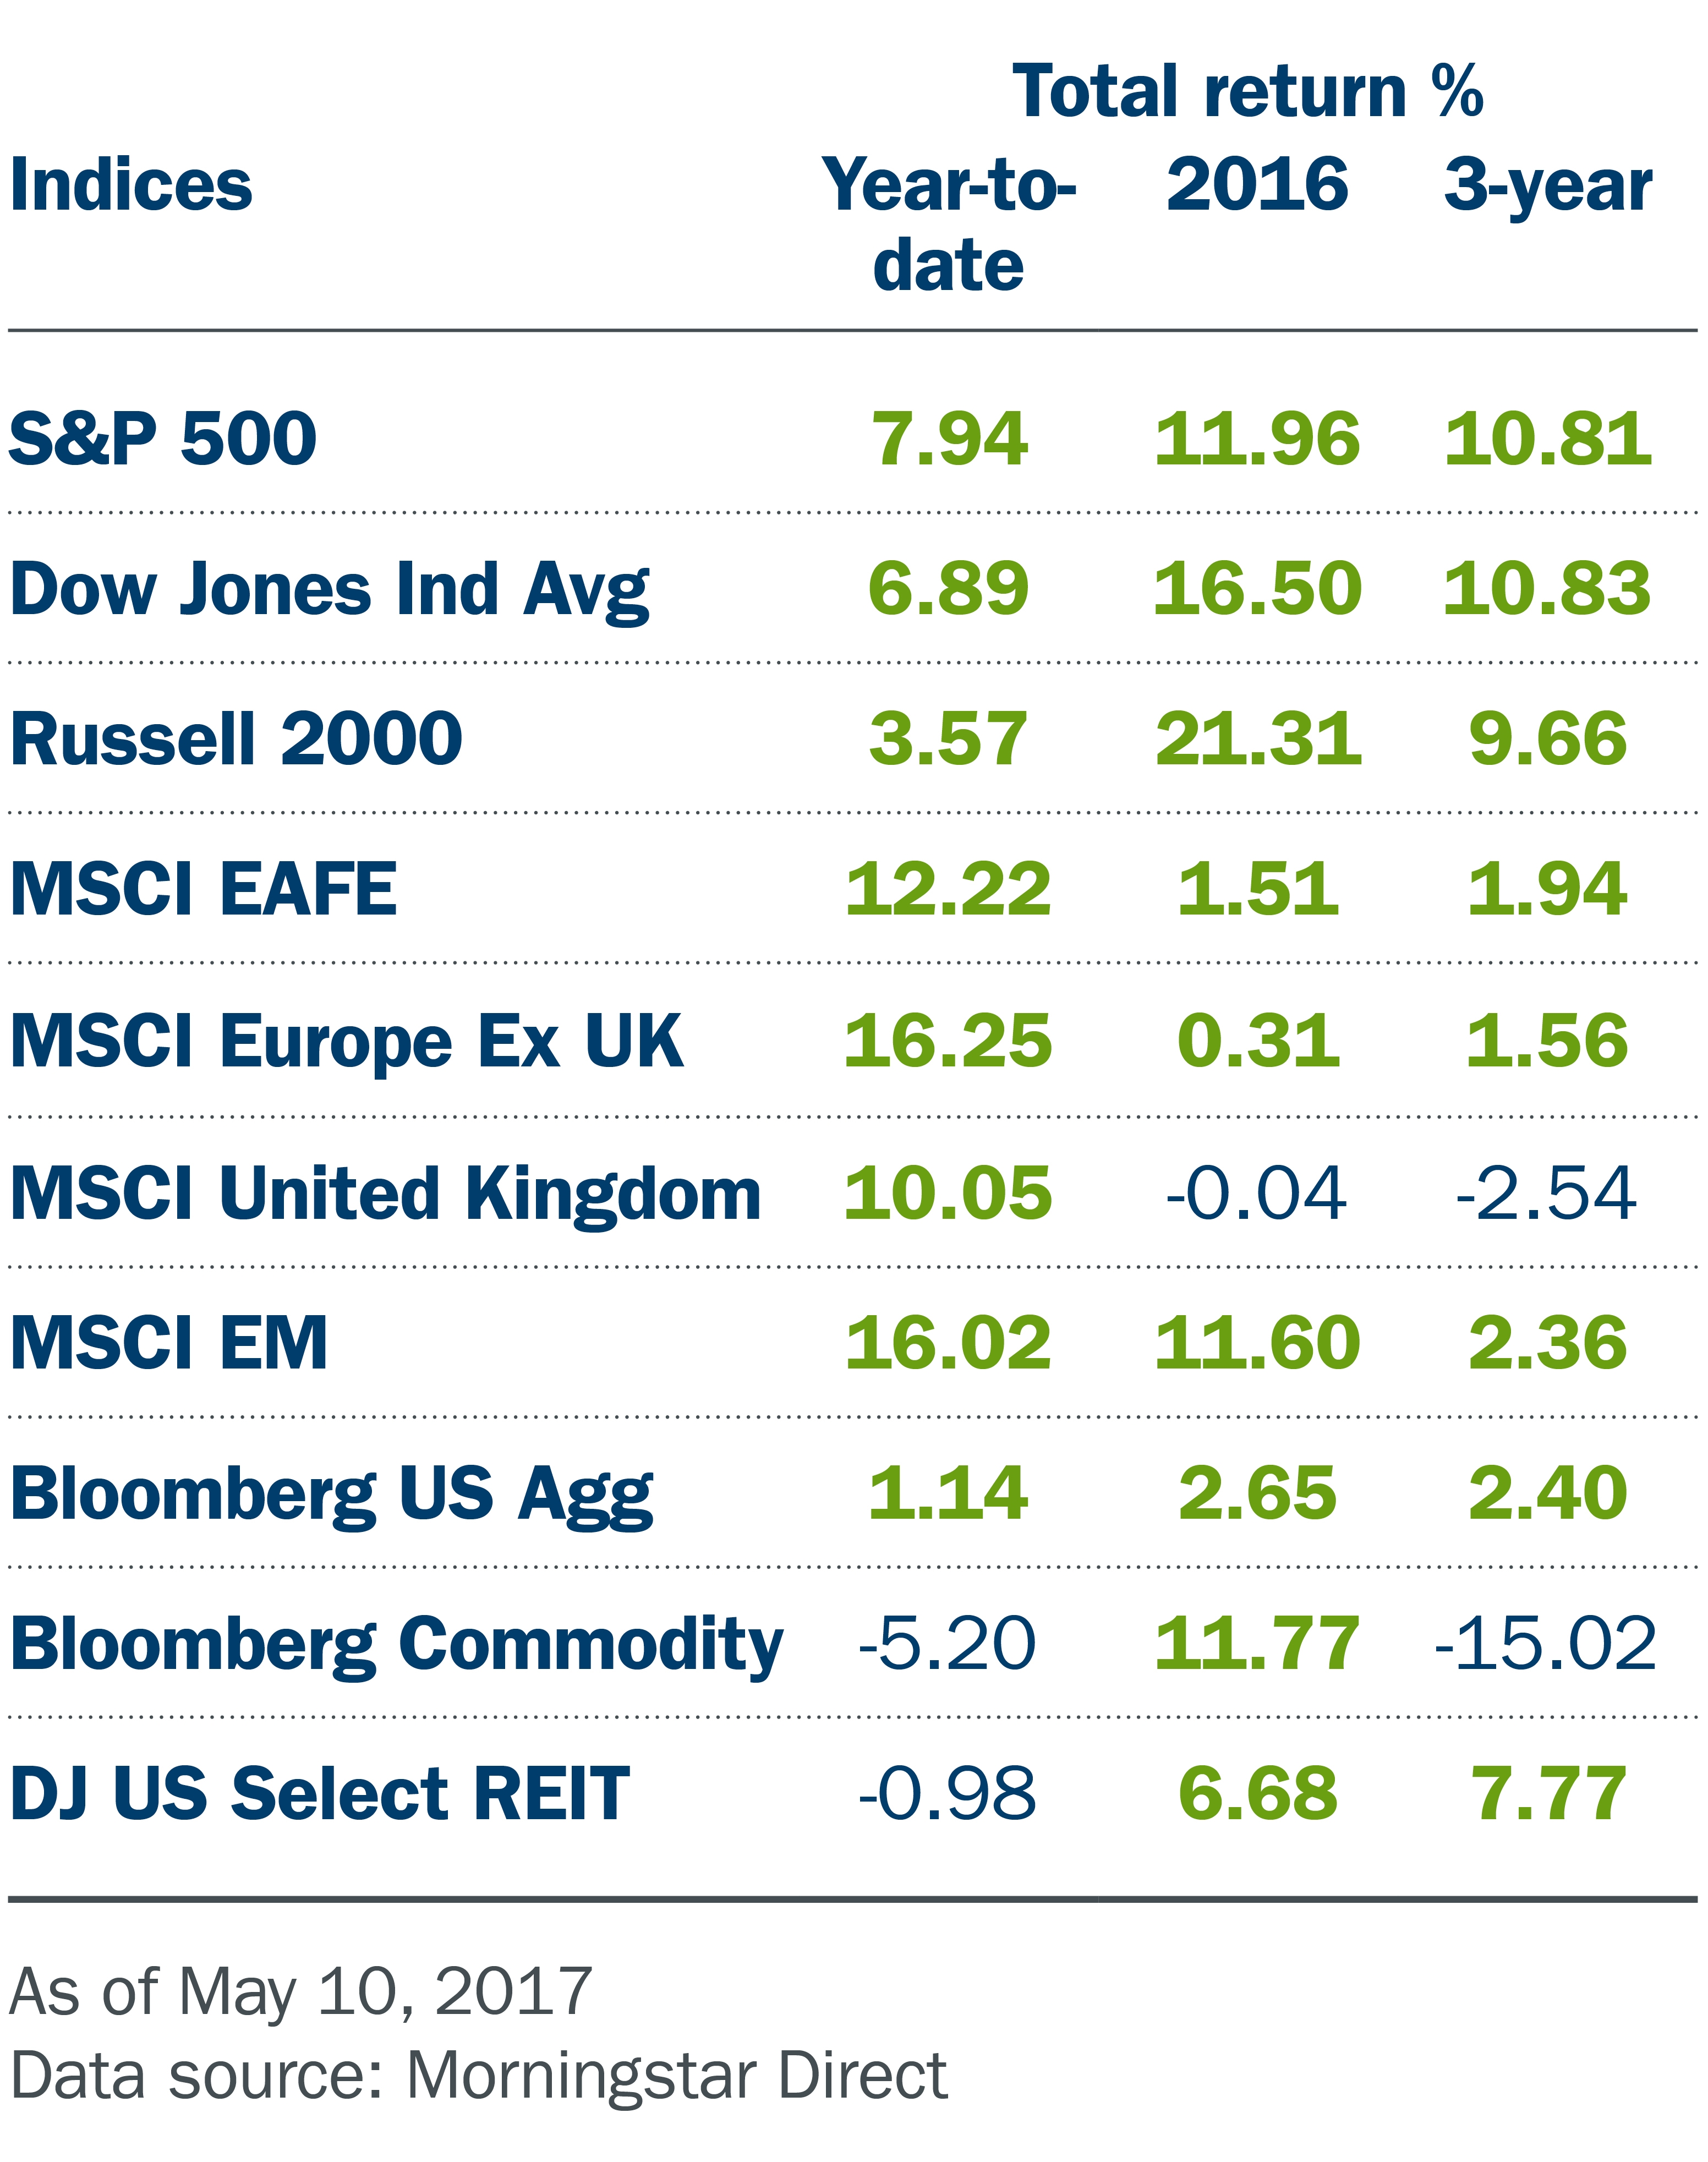 Indices chart